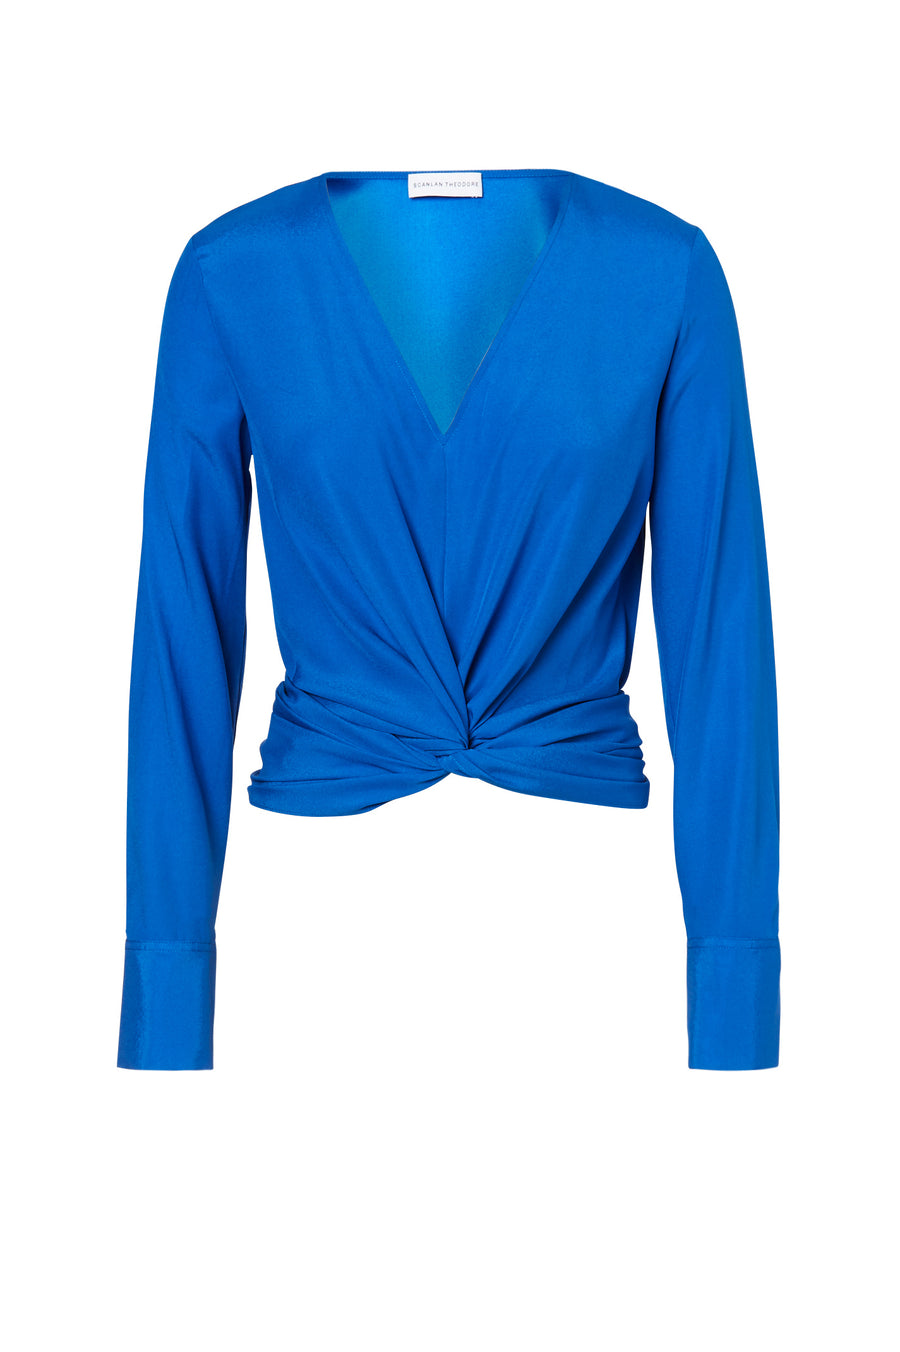 Silk Turban Twist Blouse, cut on the bias, soft drape, v-neck style, long sleeves, front twist detail on waist, color Peacock